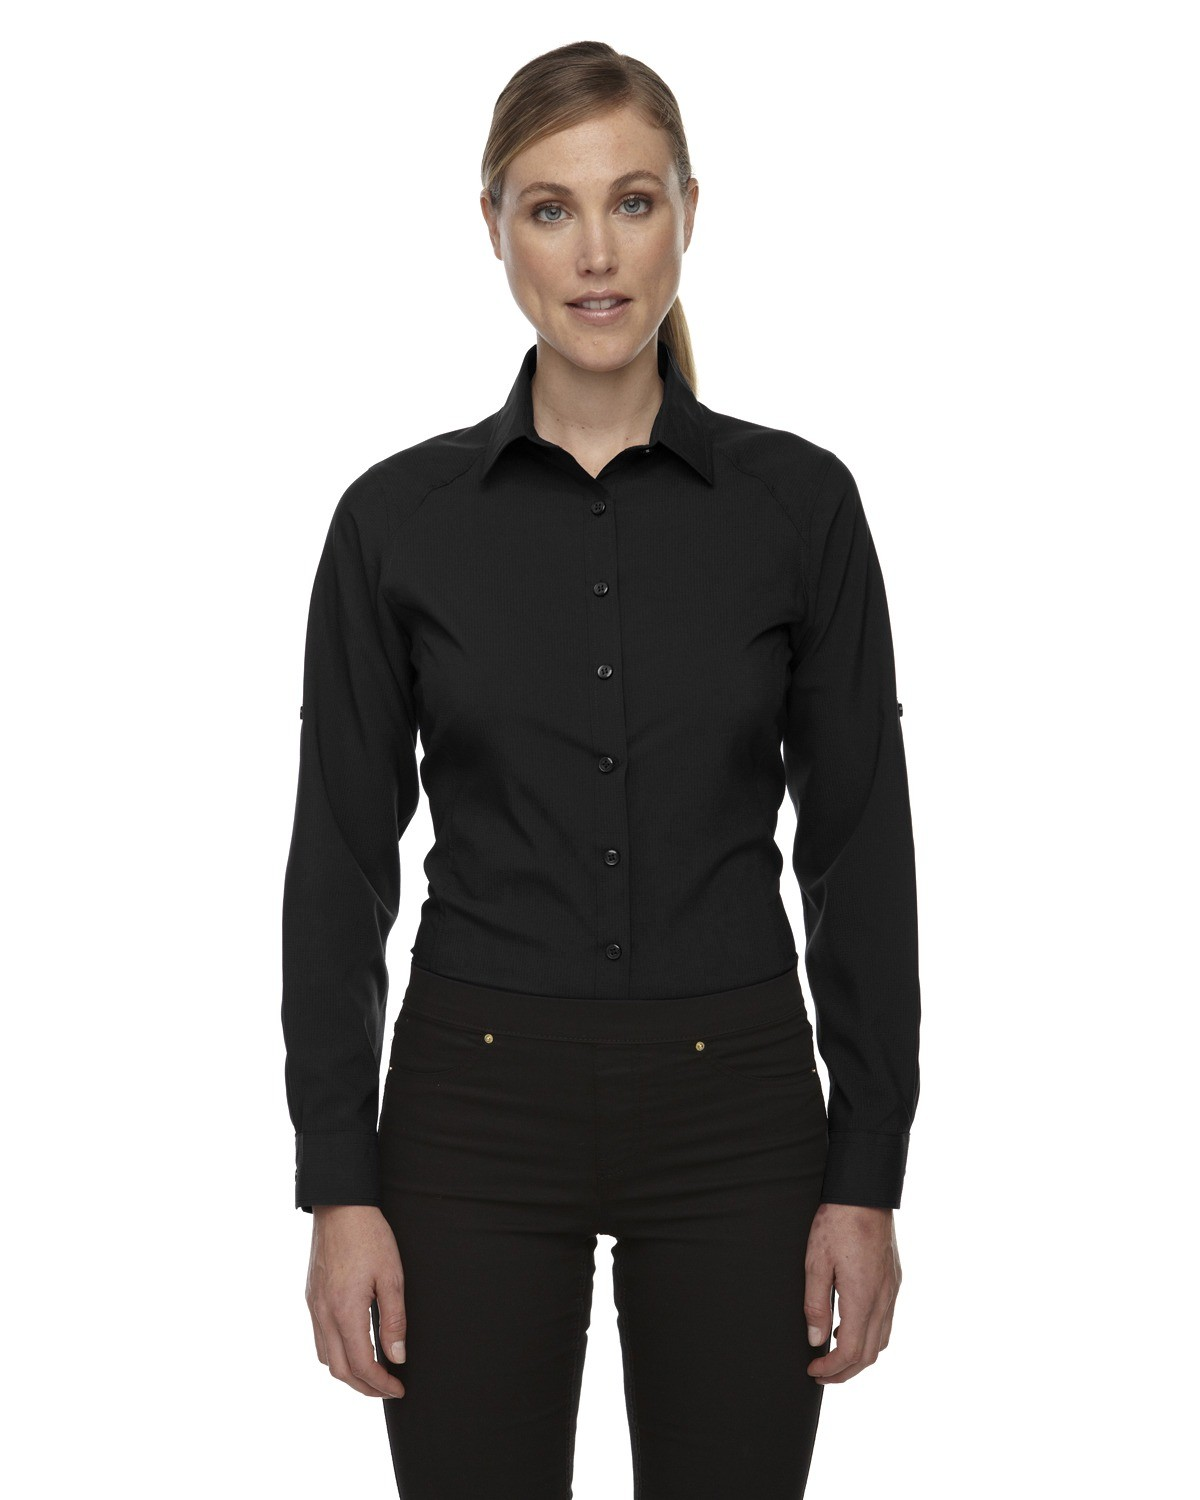 Ladies' Rejuvenate Performance Shirt with Roll-Up Sleeves